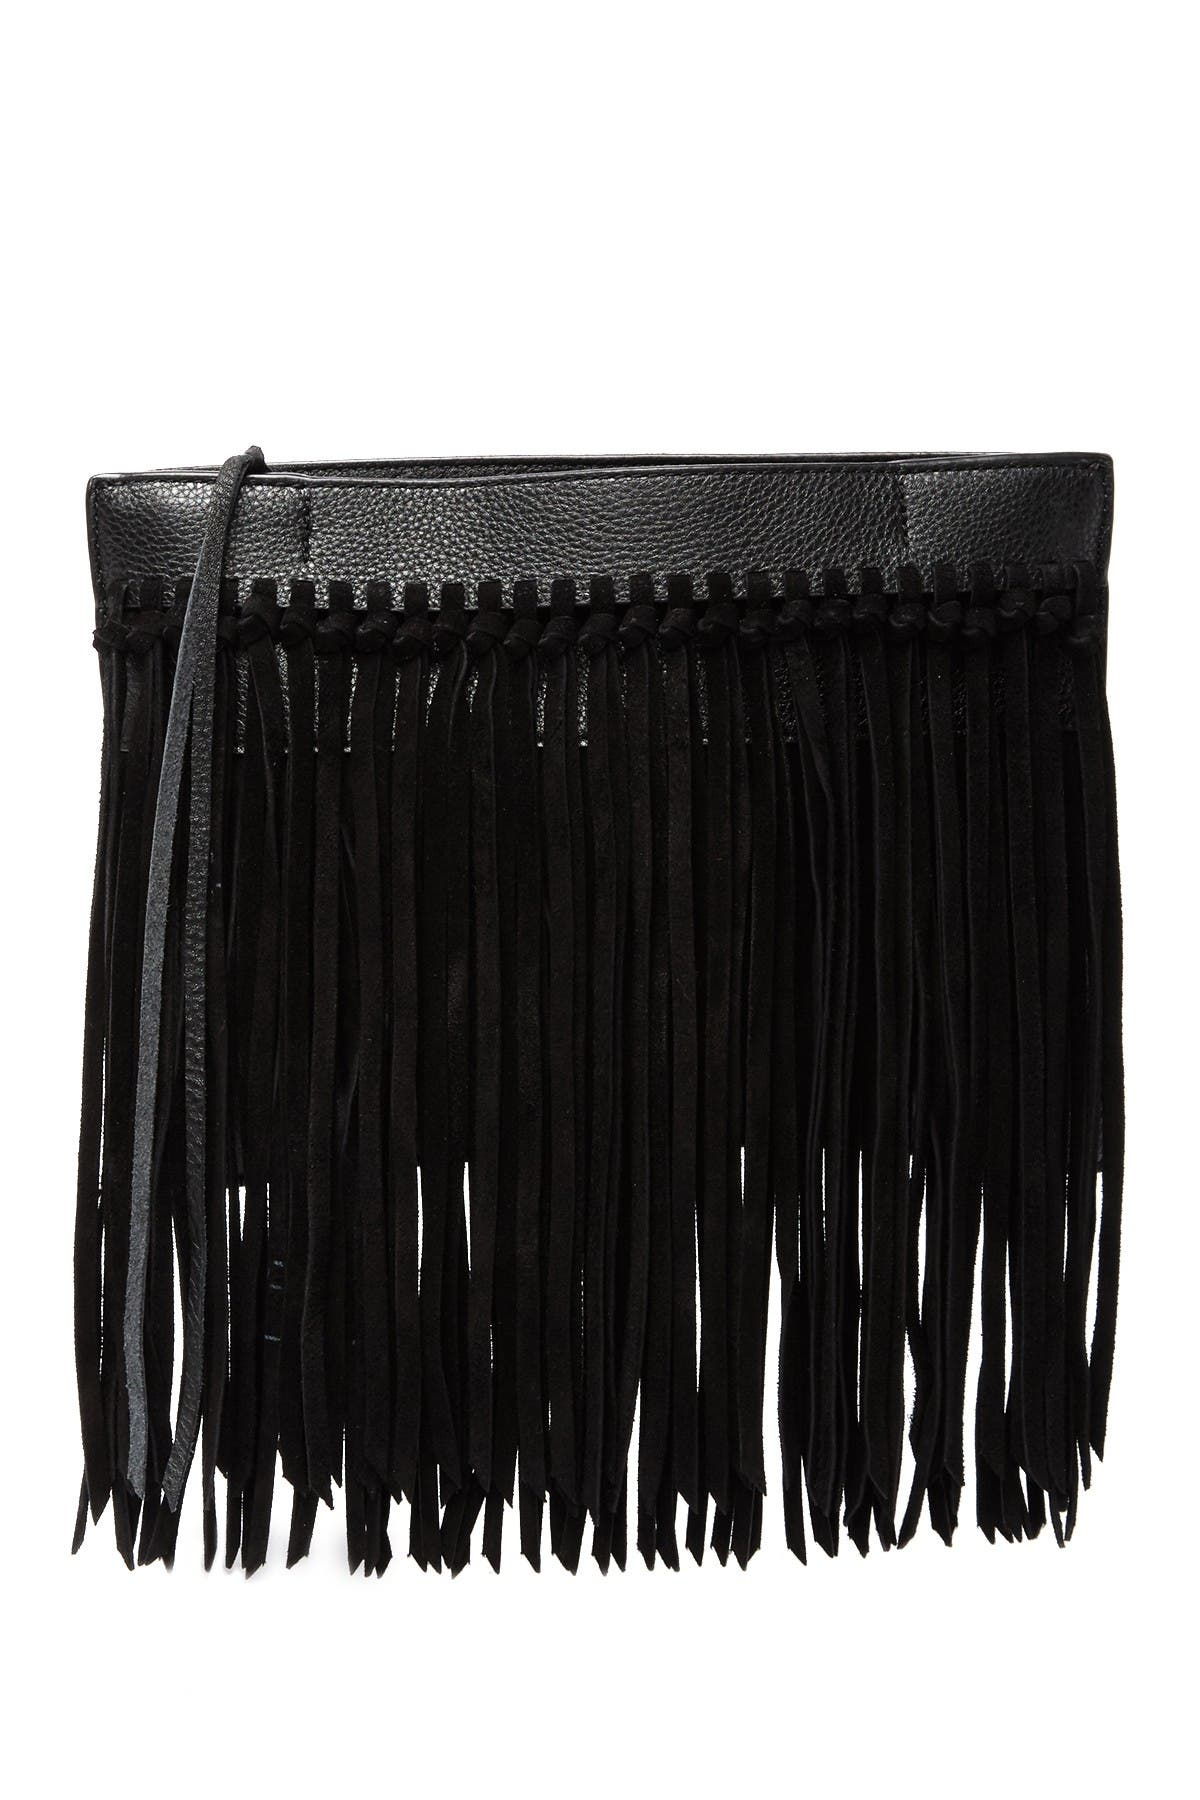 Image of Rebecca Minkoff Stevie Fringe Clutch